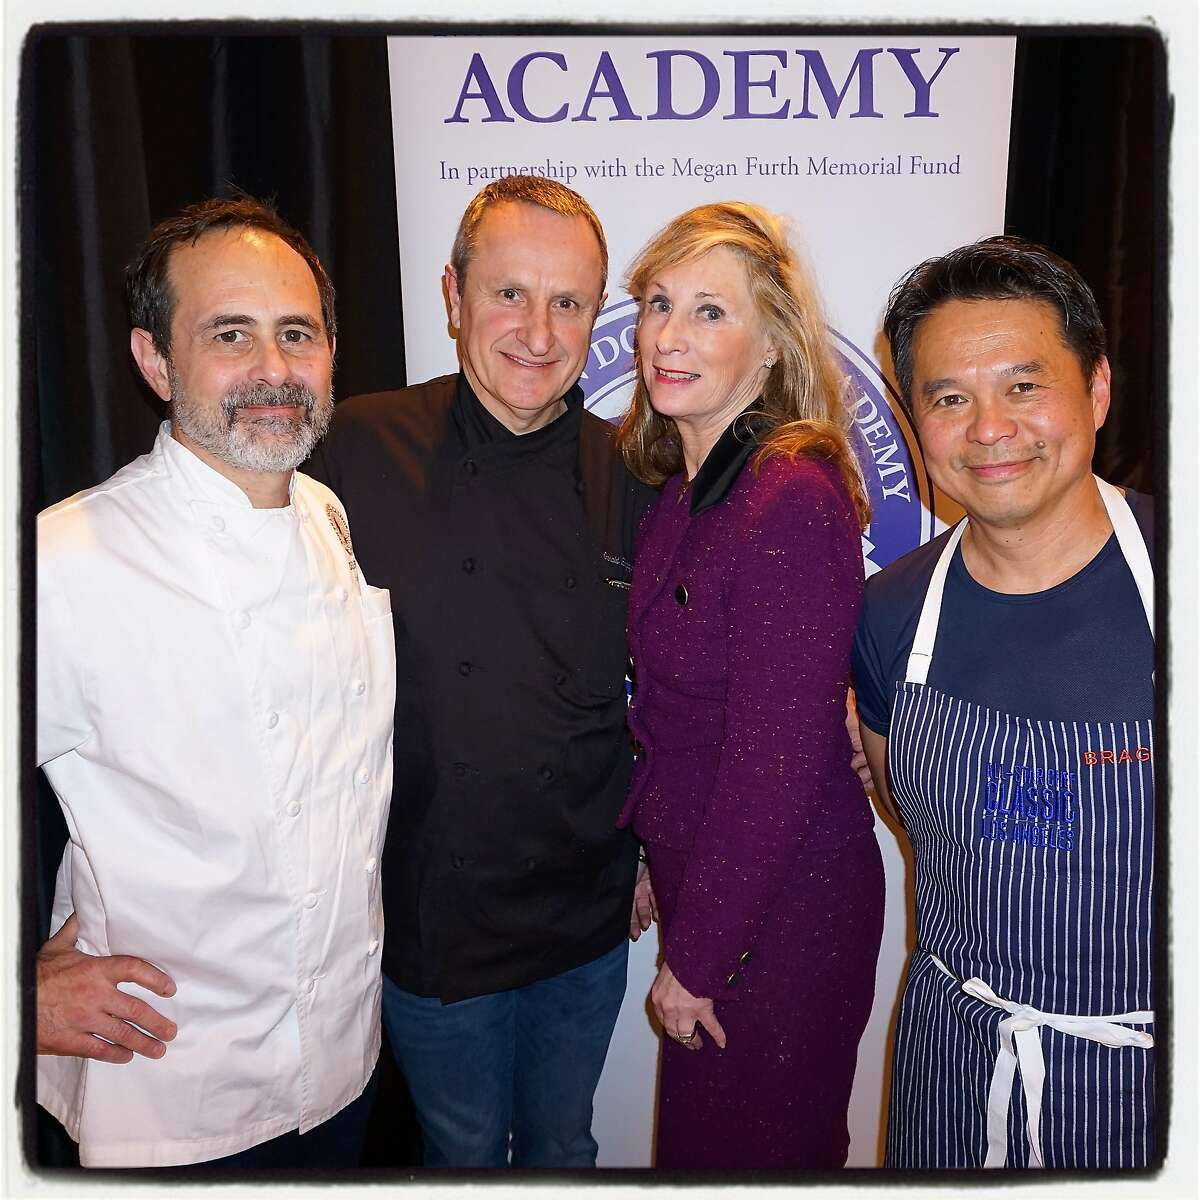 Chef Craig Stoll (left) with chef Charles Hirigoyen, lunch chair Sara Duryea and chef Charles Phan at the Mission Dolores Academy fundraiser. April 2016.